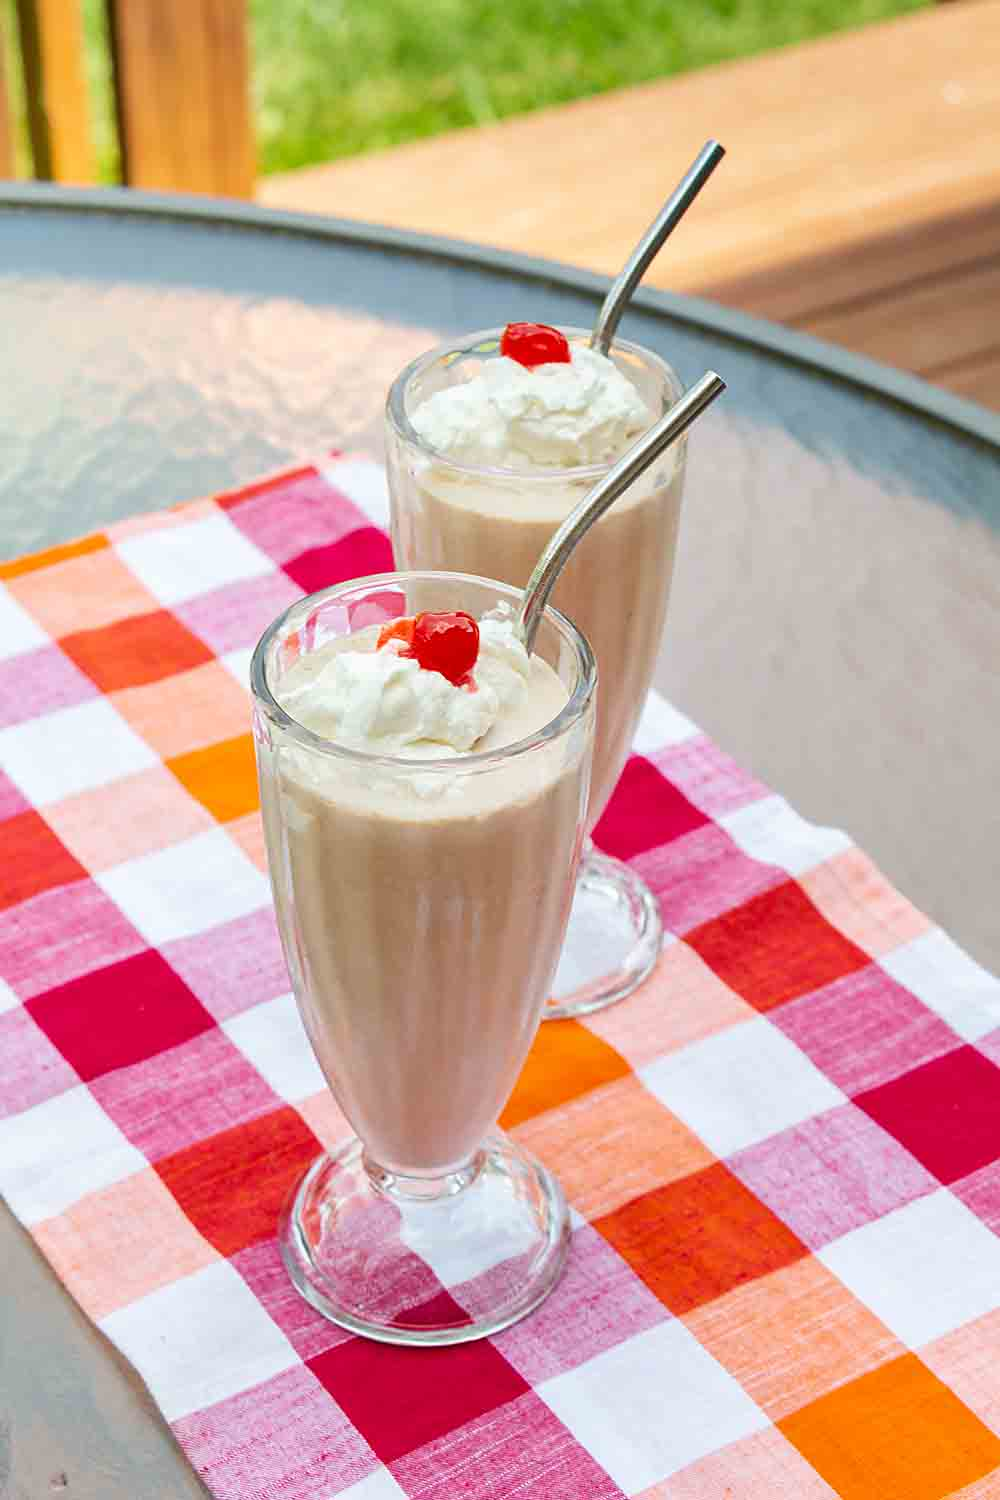 Like an extra flavorful chocolate shake, a chocolate malt gives a nod to tradition and a big boost to flavor for this beverage or dessert.